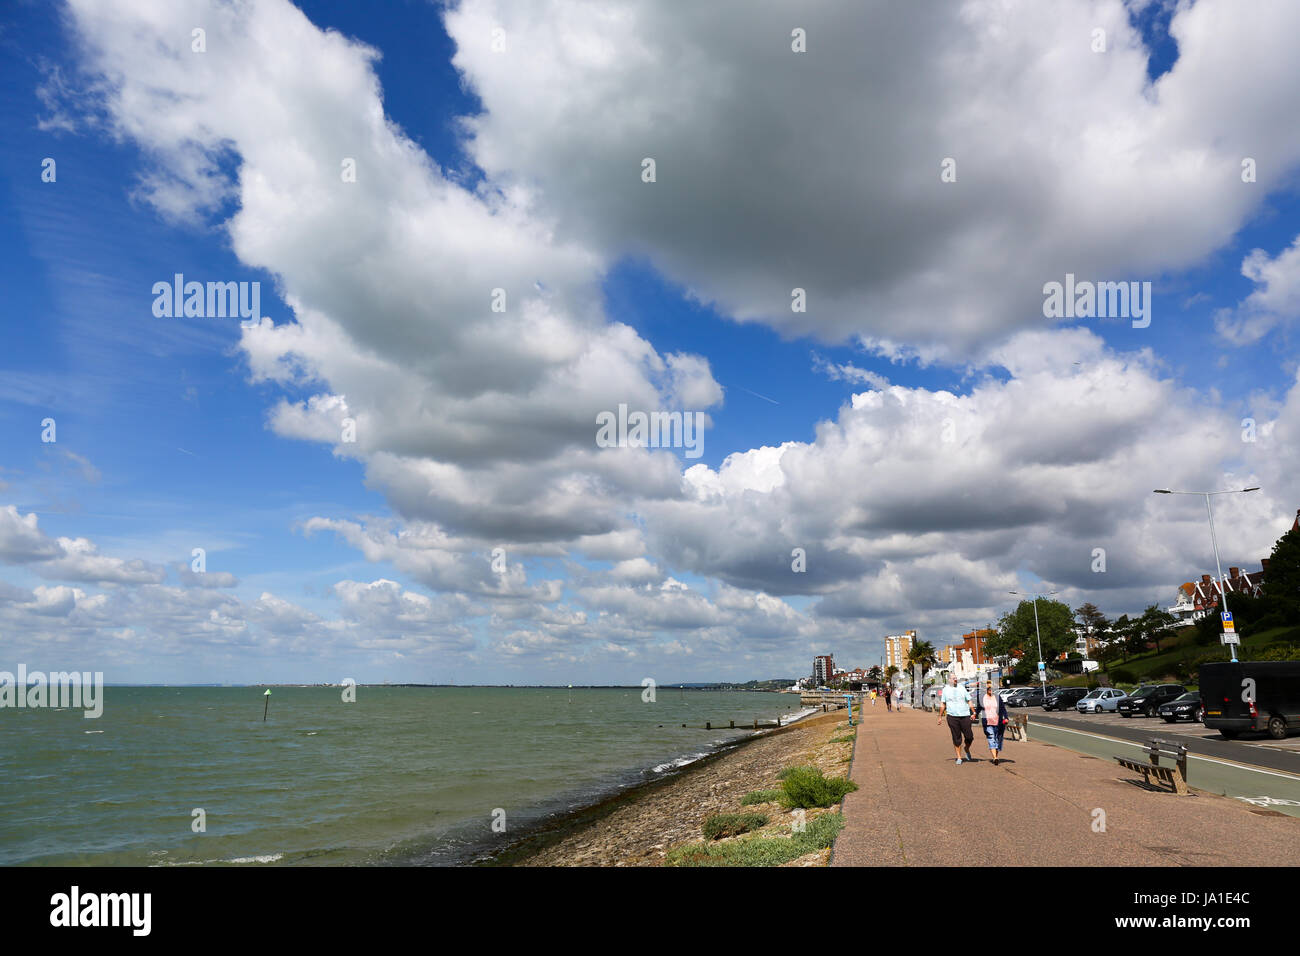 Southend on Sea, Essex. 4th June, 2017. A few clouds and breezy start to Sunday in Southend. Credit: Penelope Barritt/Alamy Stock Photo